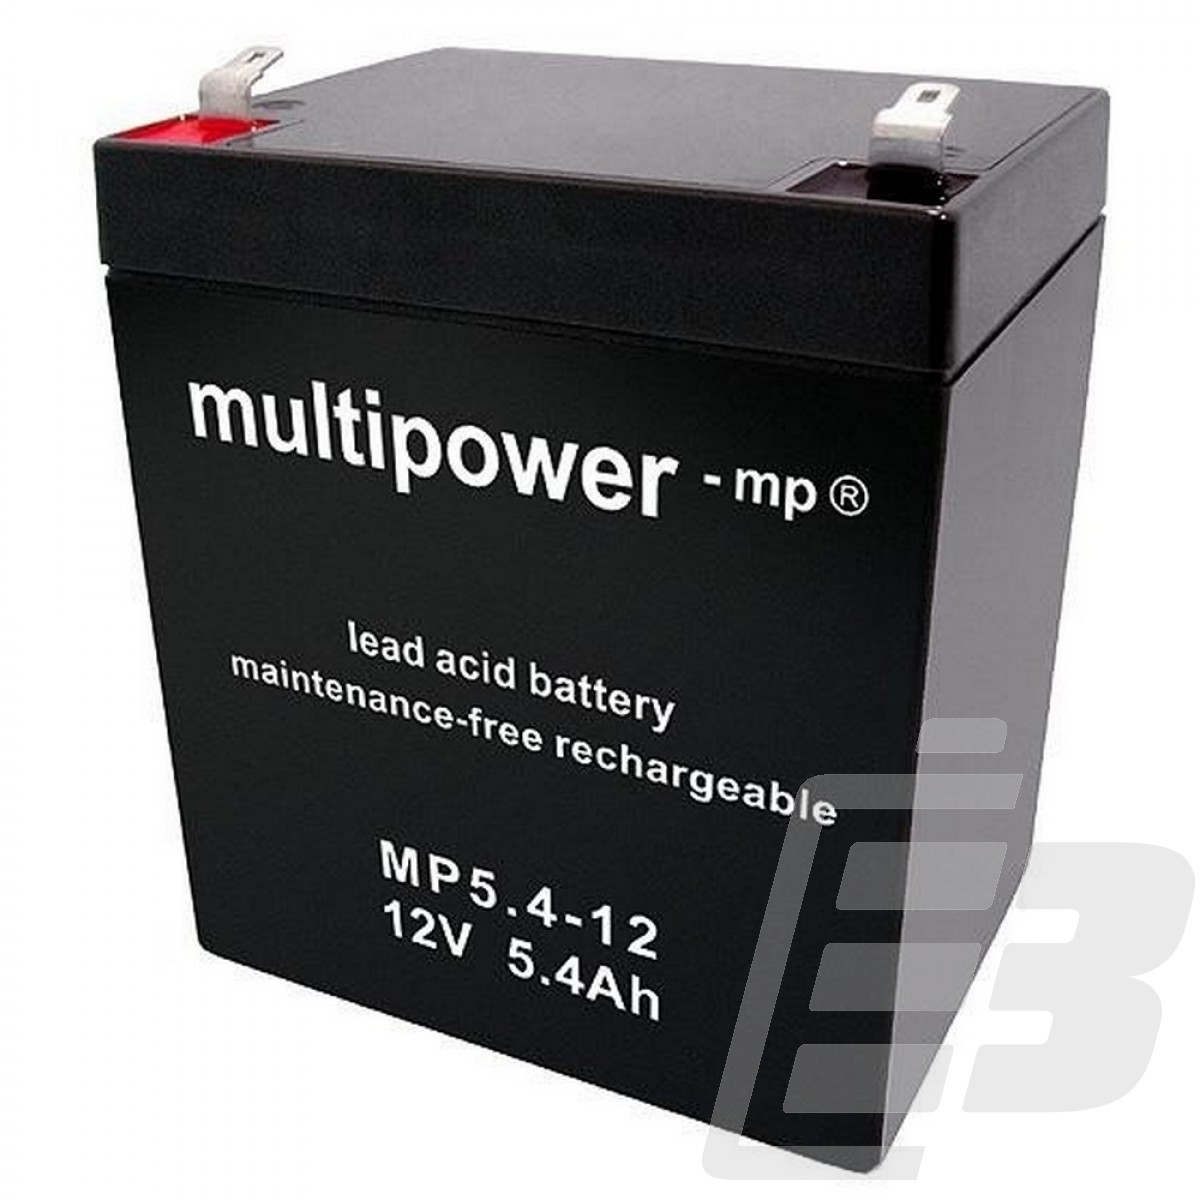 multipower lead acid battery 12v 5 4ah. Black Bedroom Furniture Sets. Home Design Ideas